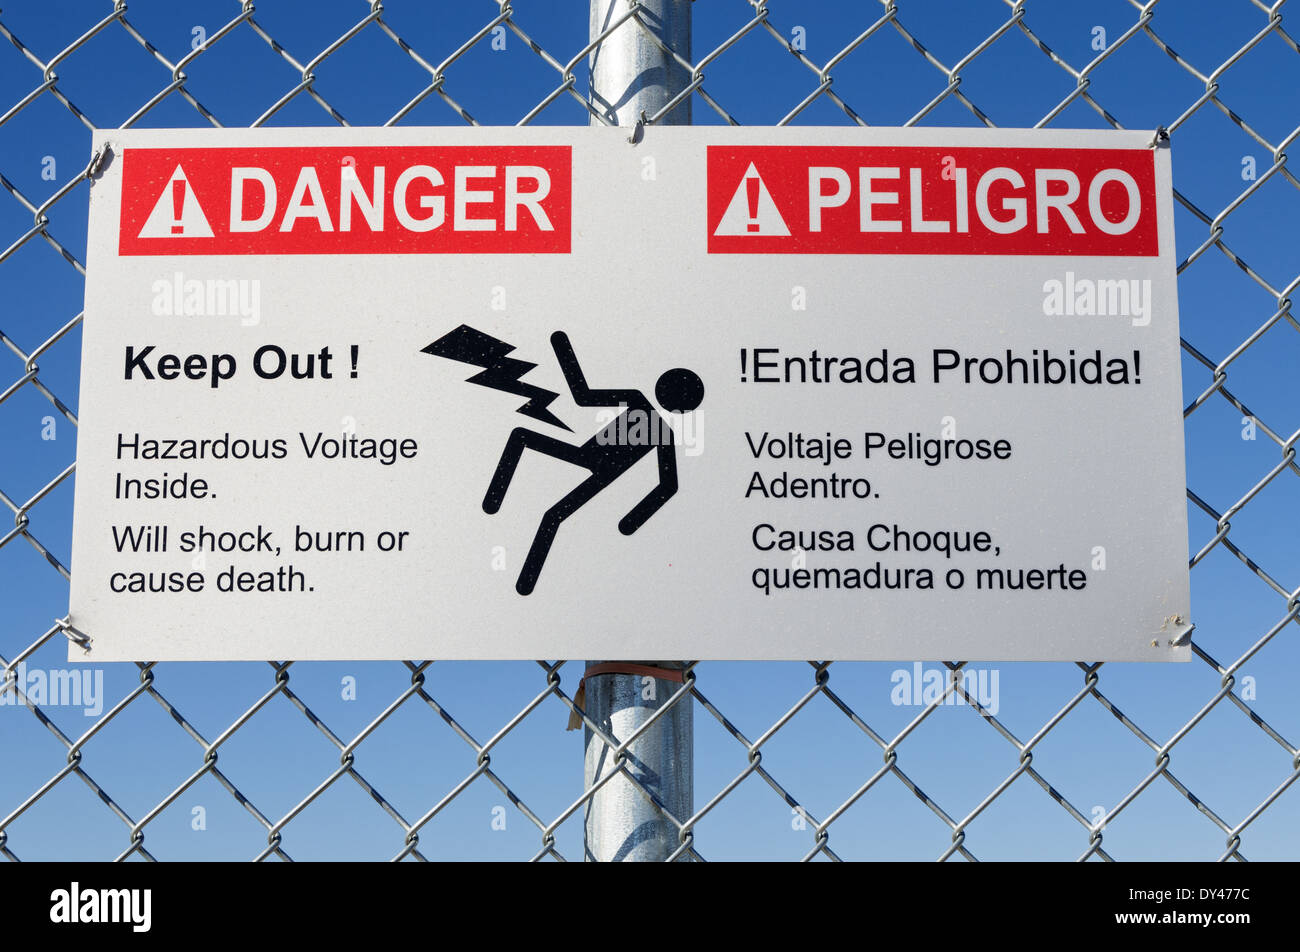 danger hazardous voltage keep out sign in English and Spanish on a fence with blue sky - Stock Image